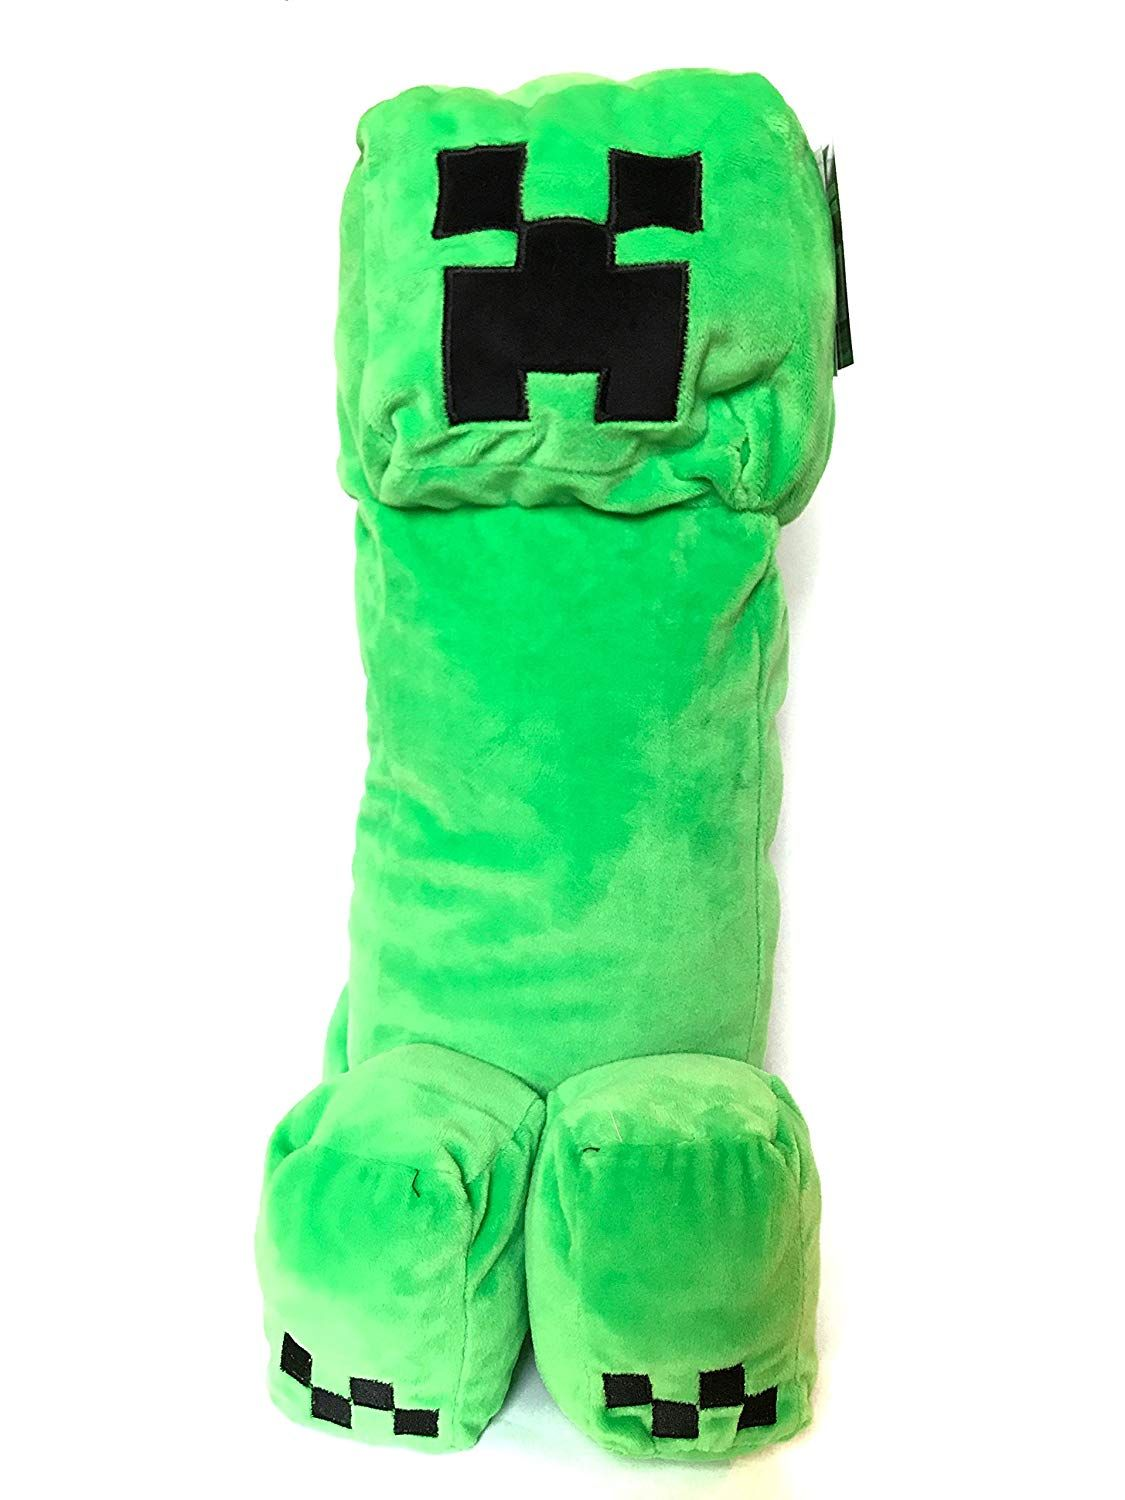 Home (With images) Bed pillows, Pillows, Minecraft room